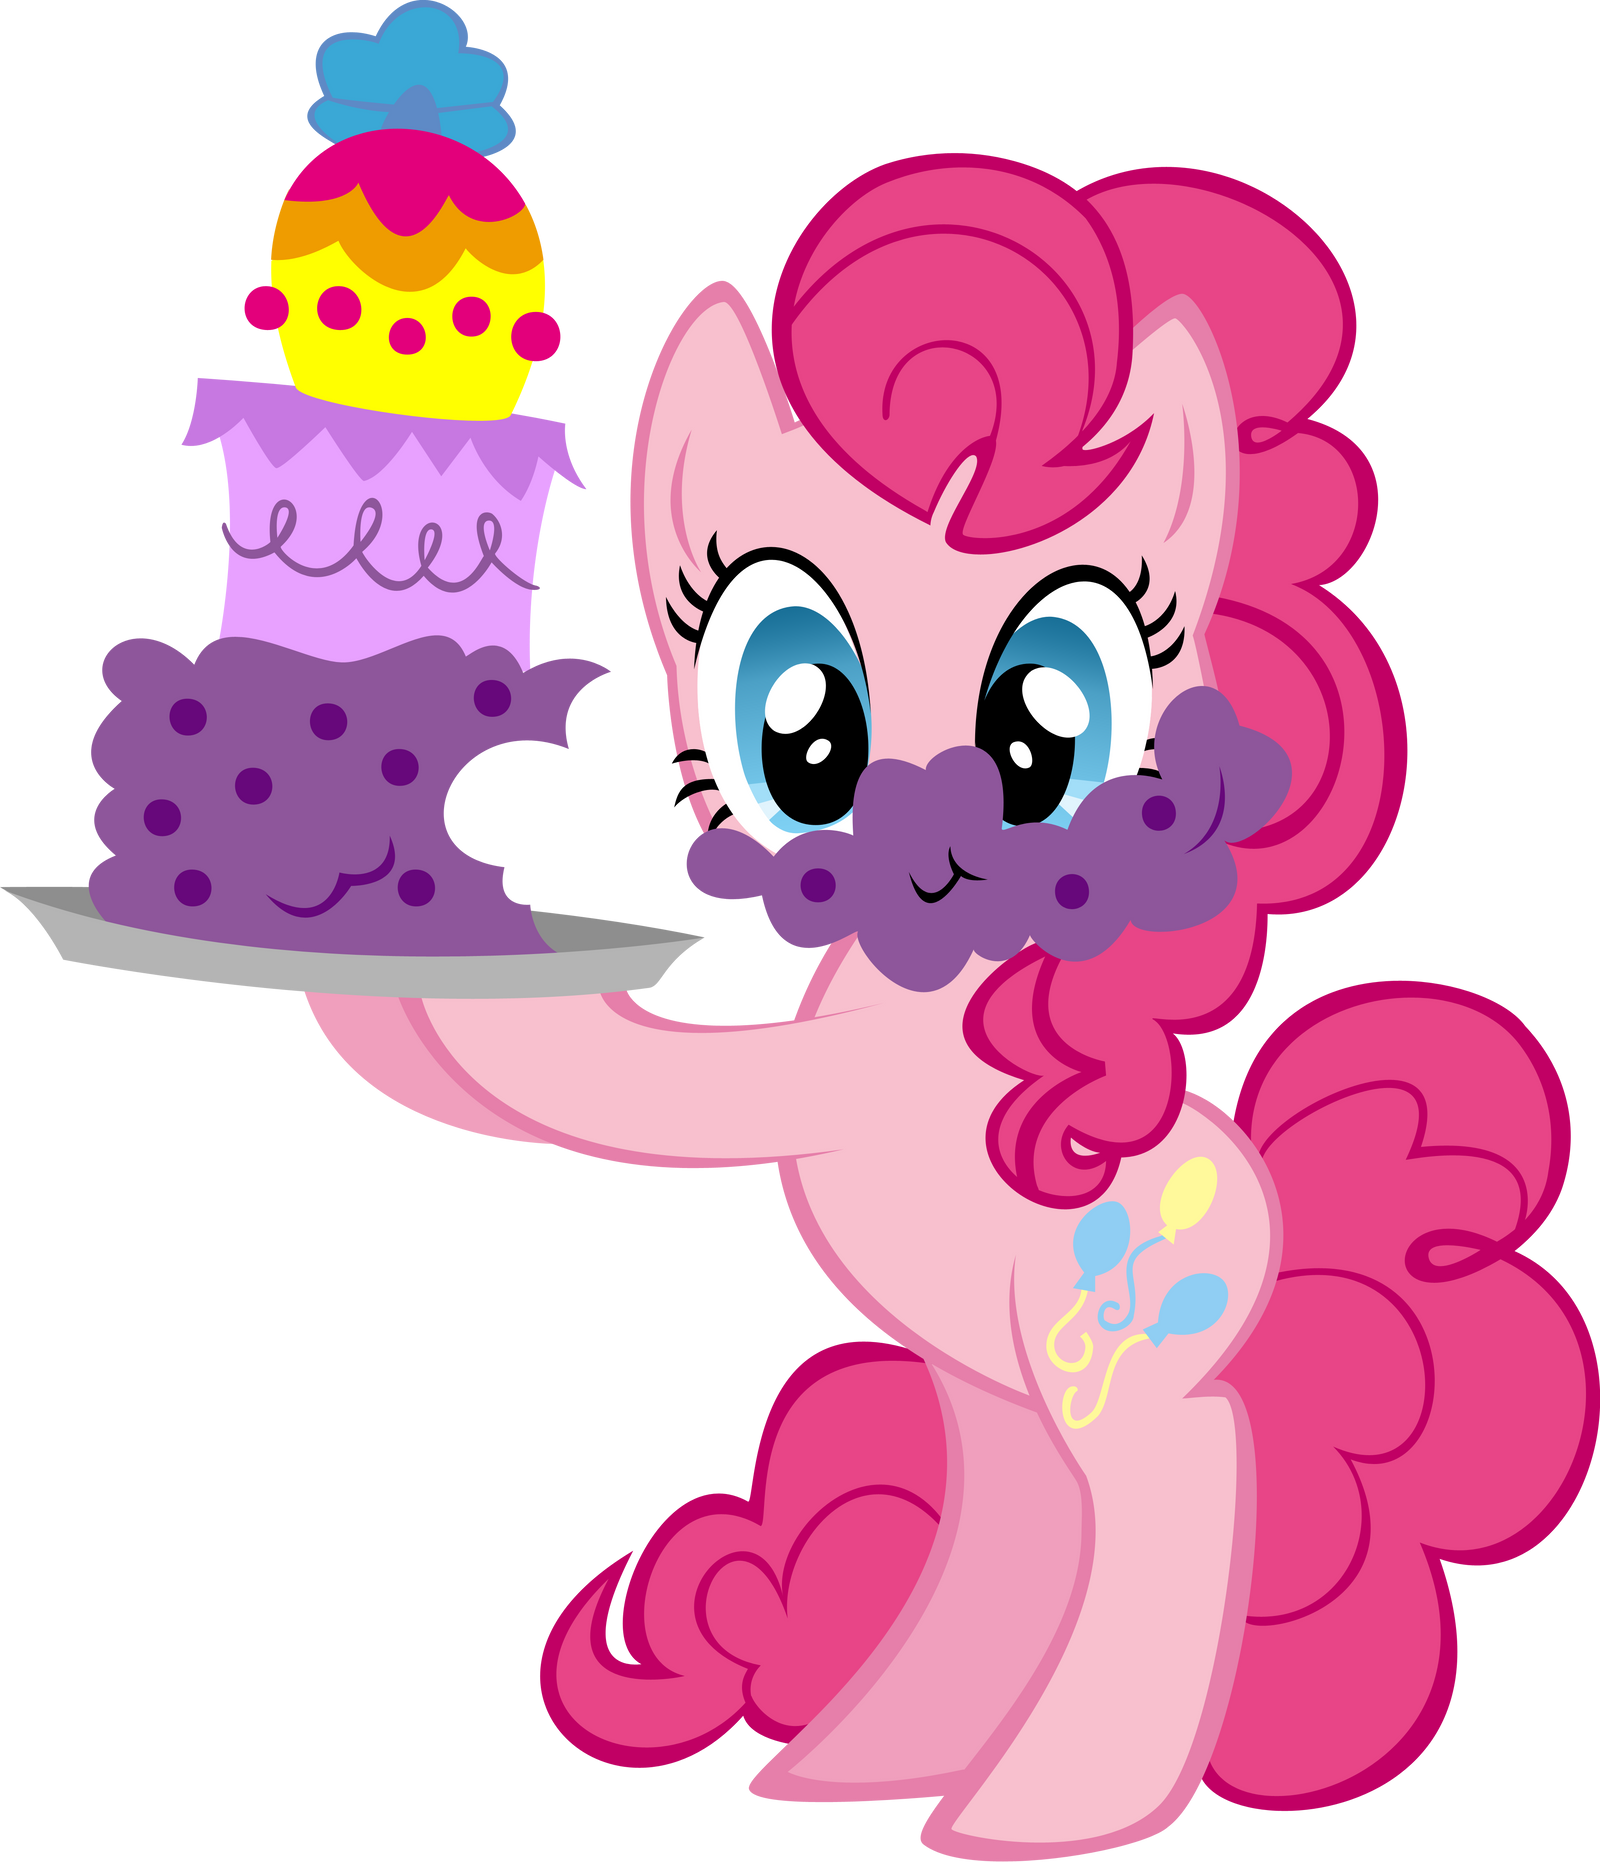 Pinkie Pie with Cake by Ernestboy